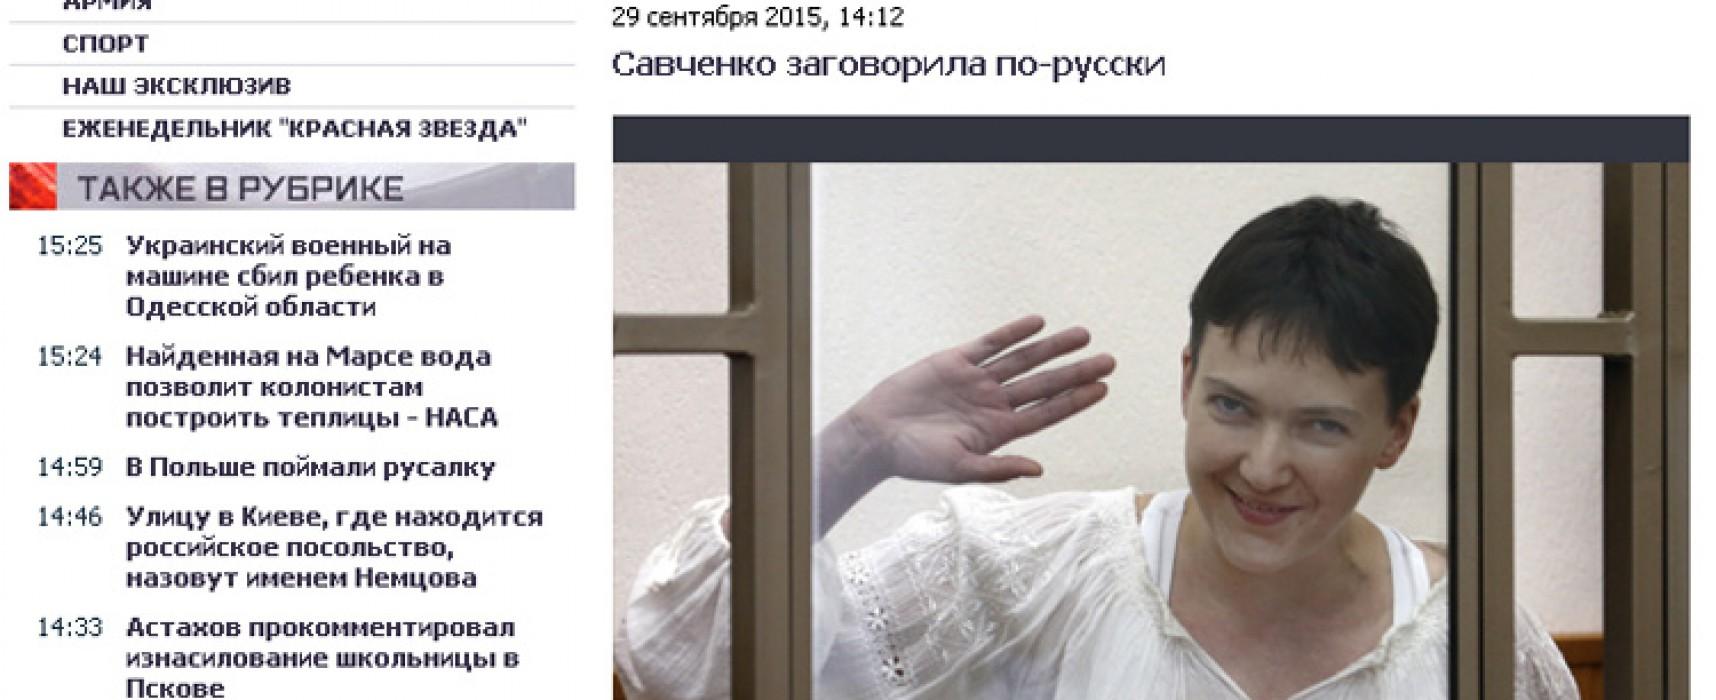 Russian and Separatist Media Distort Savchenko's Words